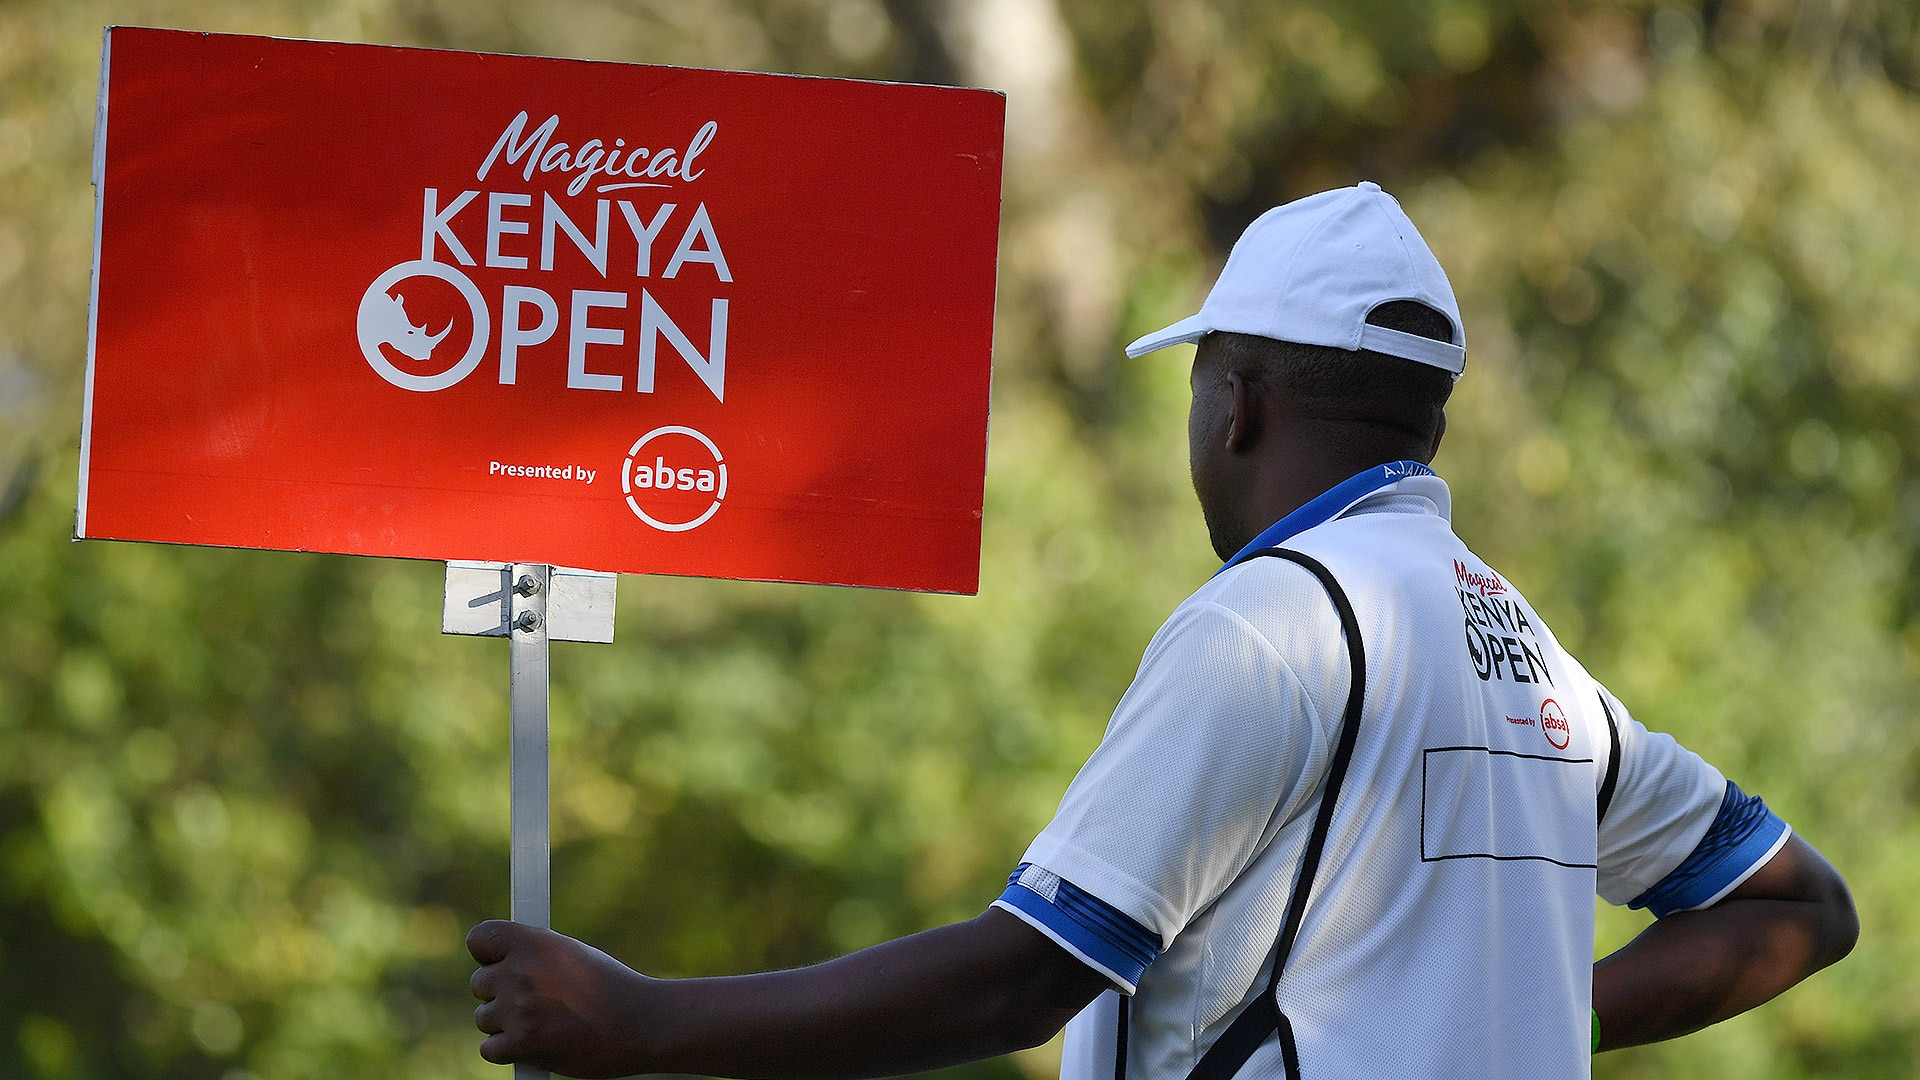 Kenya Open: No live TV coverage again for third round as 'logistical difficulties' continue